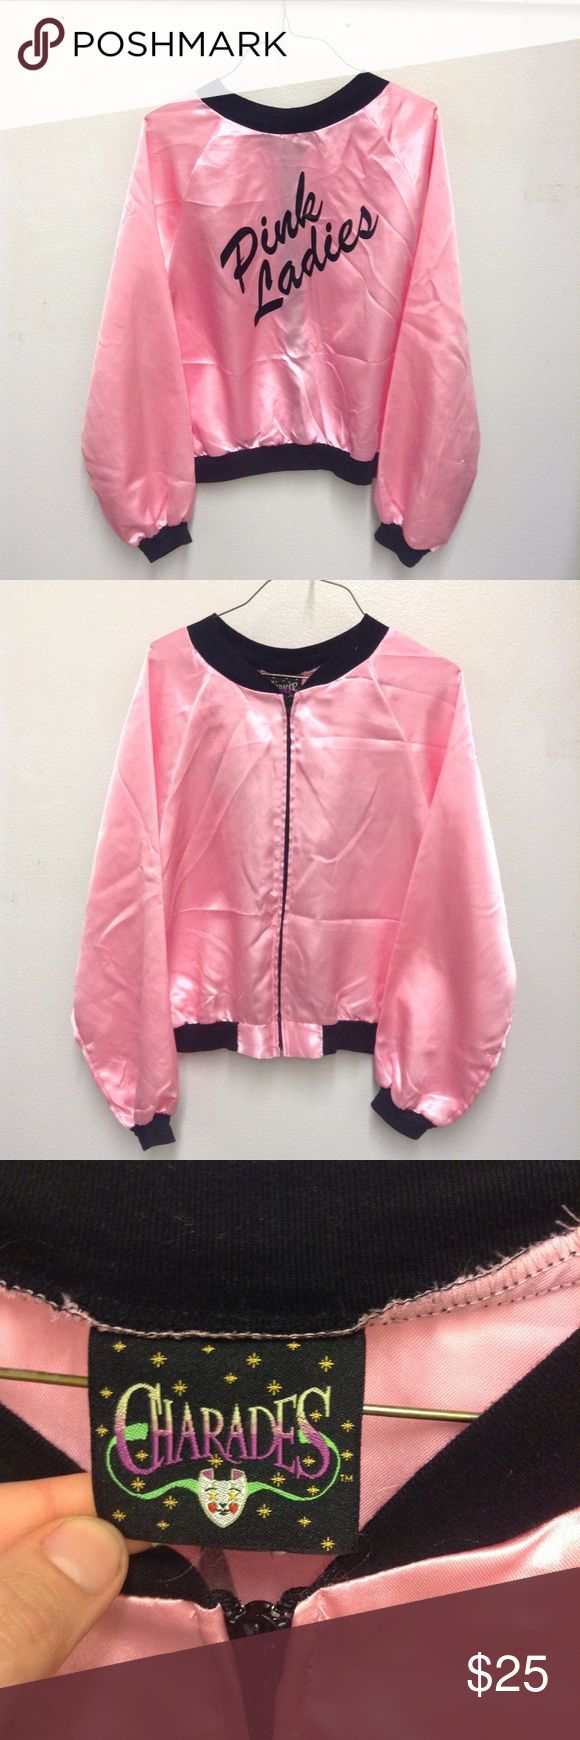 """80s Vintage """"Pink Ladies"""" Satin Bomber Jacket I am so in love with this!! ✨ Amazing pink satin jacket from the 80s!A few snags here and there but nothing too noticeable. Would look great with a pain or skinny jeans and a tank top! Live it up throwback style! { vintage retro 80s 1980s nostalgia pink pastel kawaii } Jackets & Coats"""